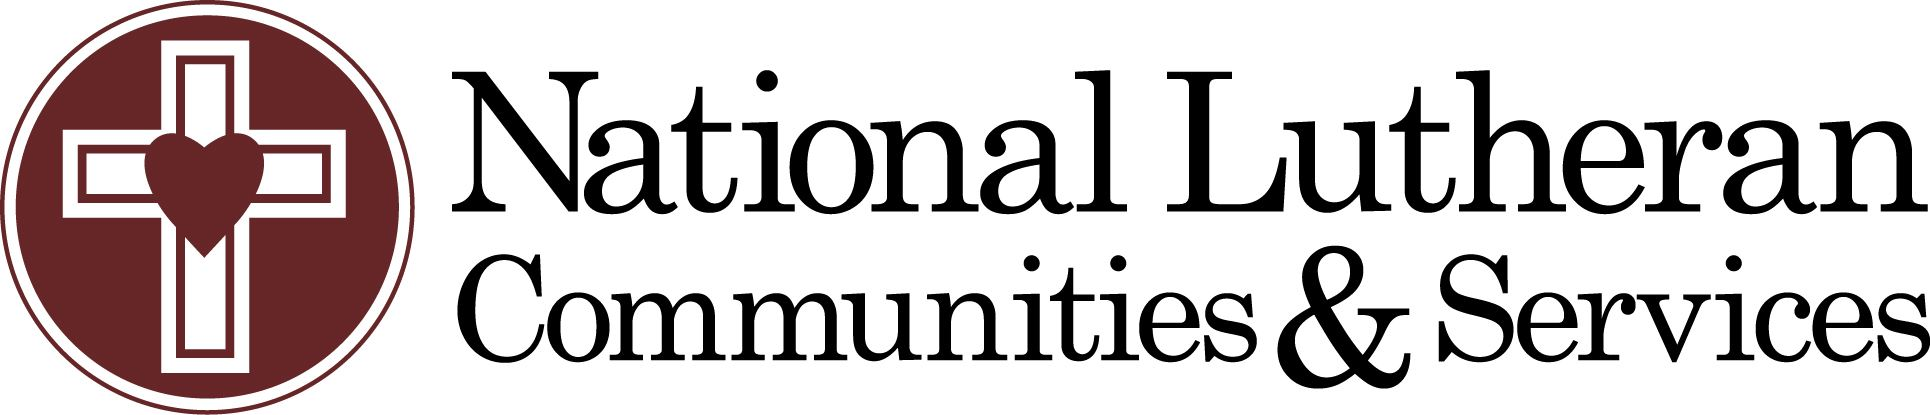 NationalLutheran Logo